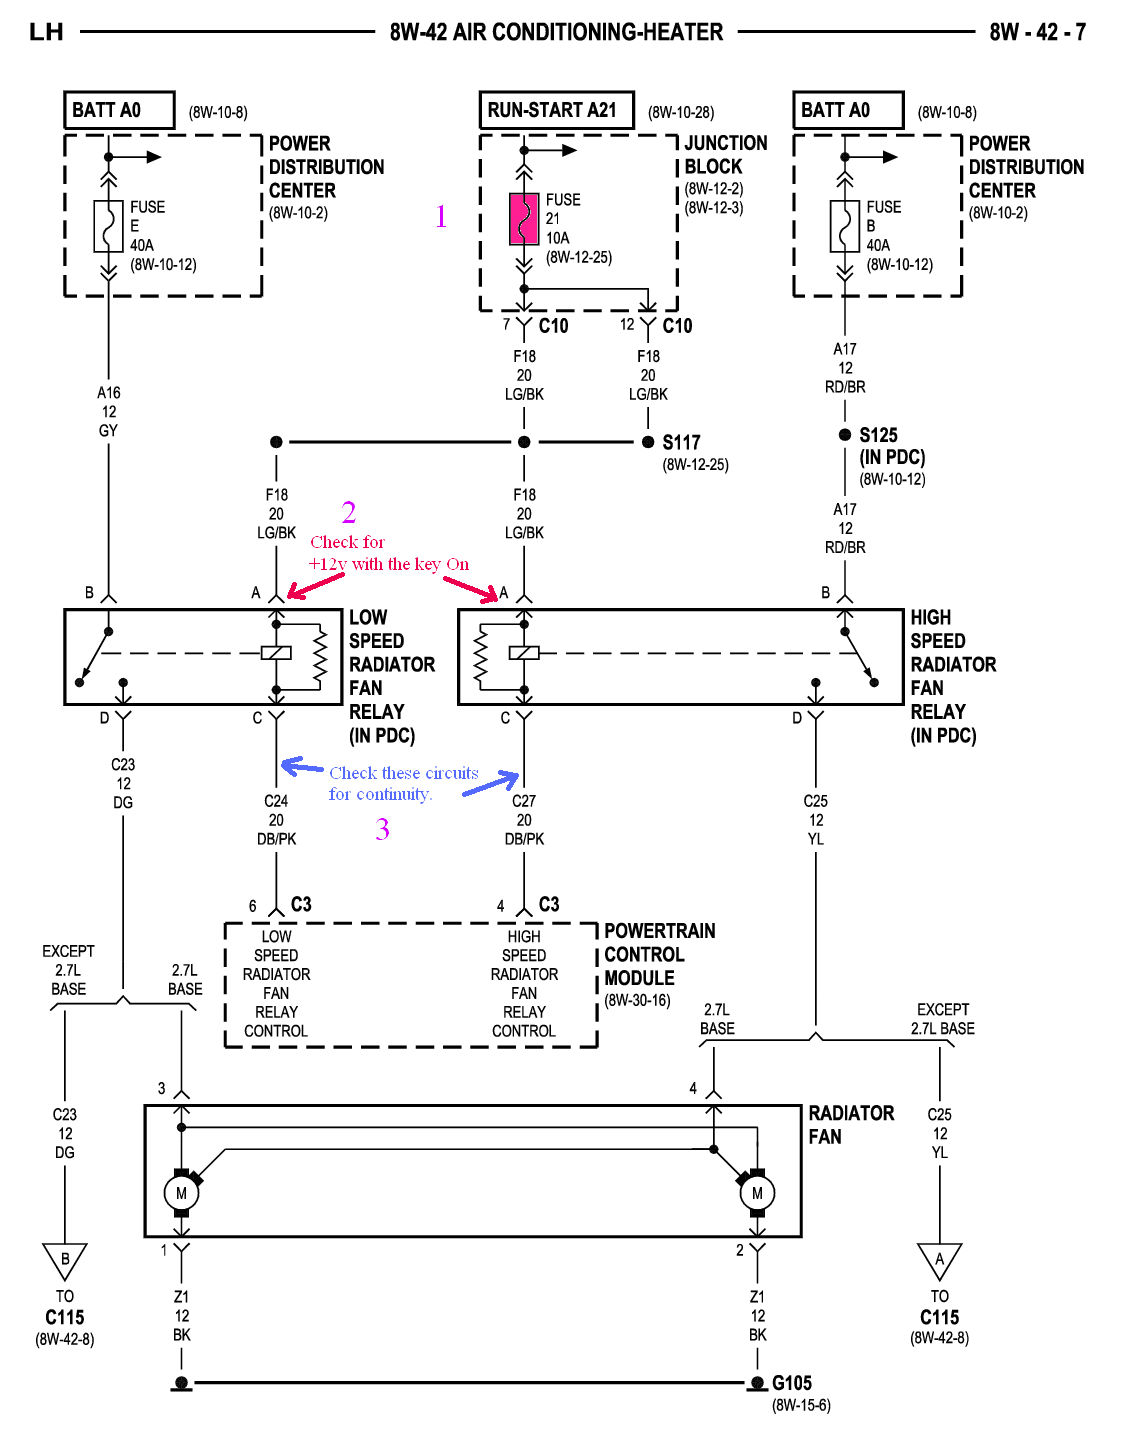 Wiring Diagram 2002 Chrysler Concorde Wiring Diagram Sample 2002 Jeep Grand  Cherokee AC Wiring Diagram 2002